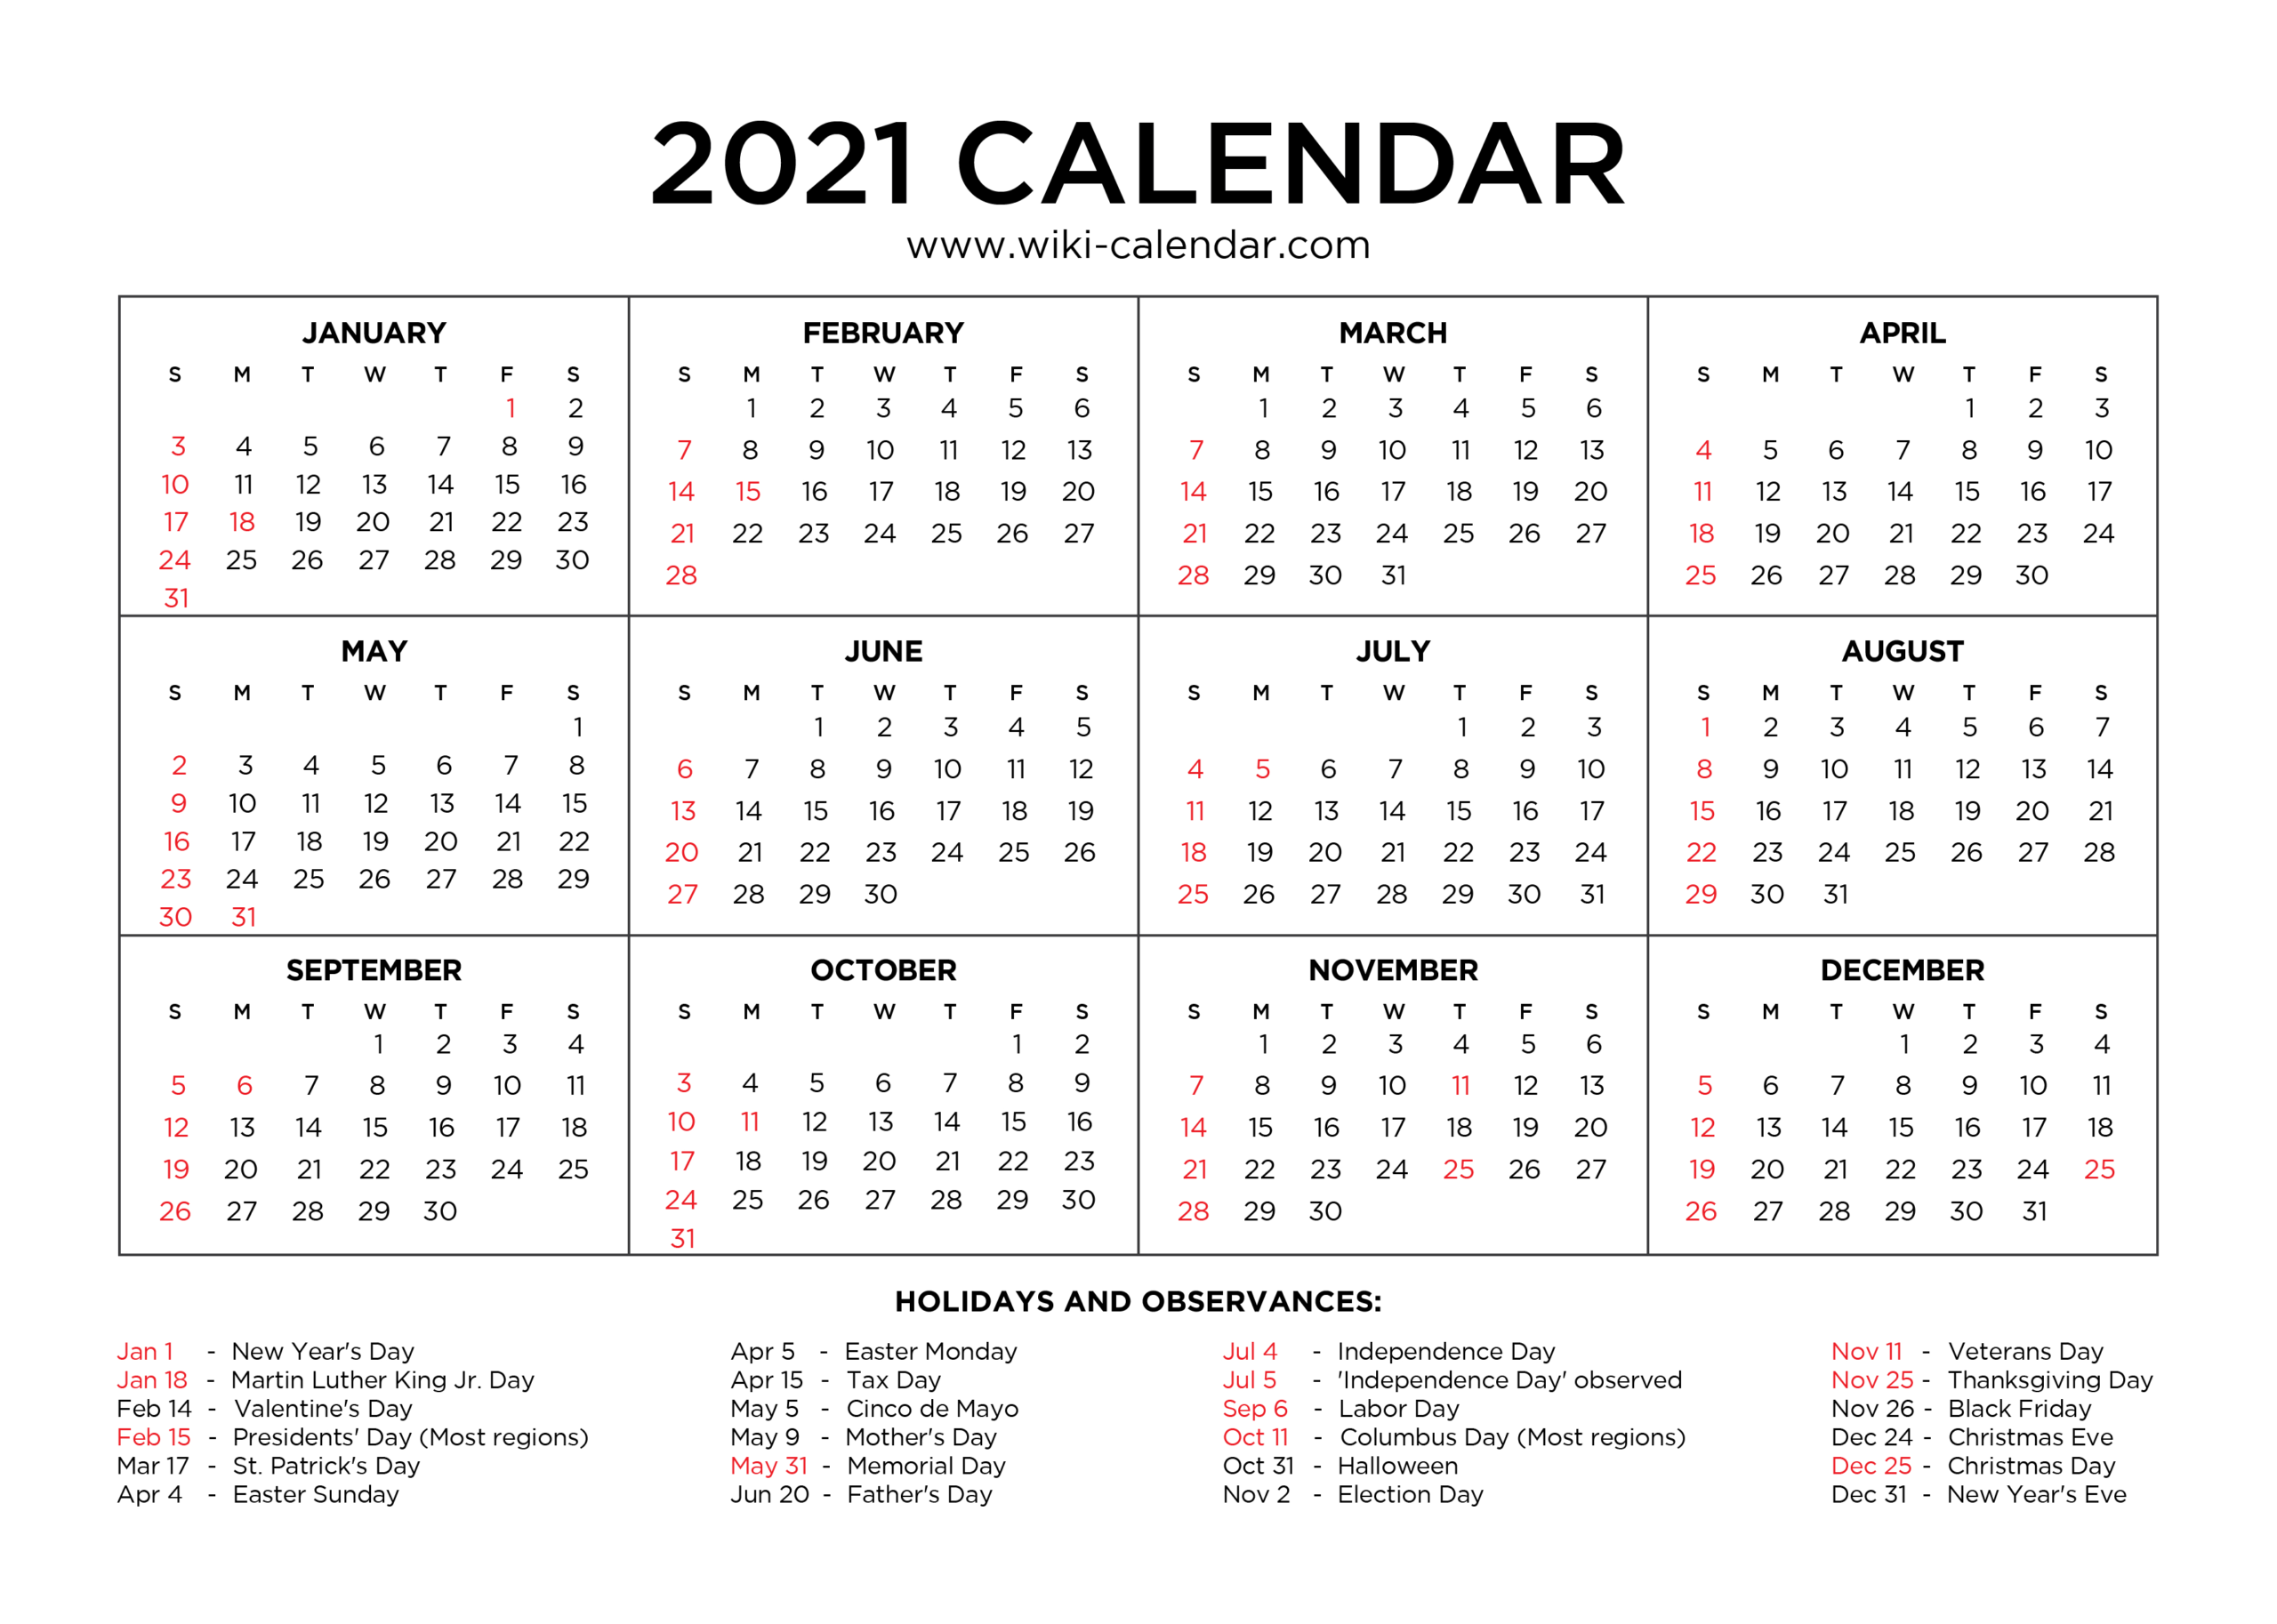 2021 Calendar Printable With Holidays